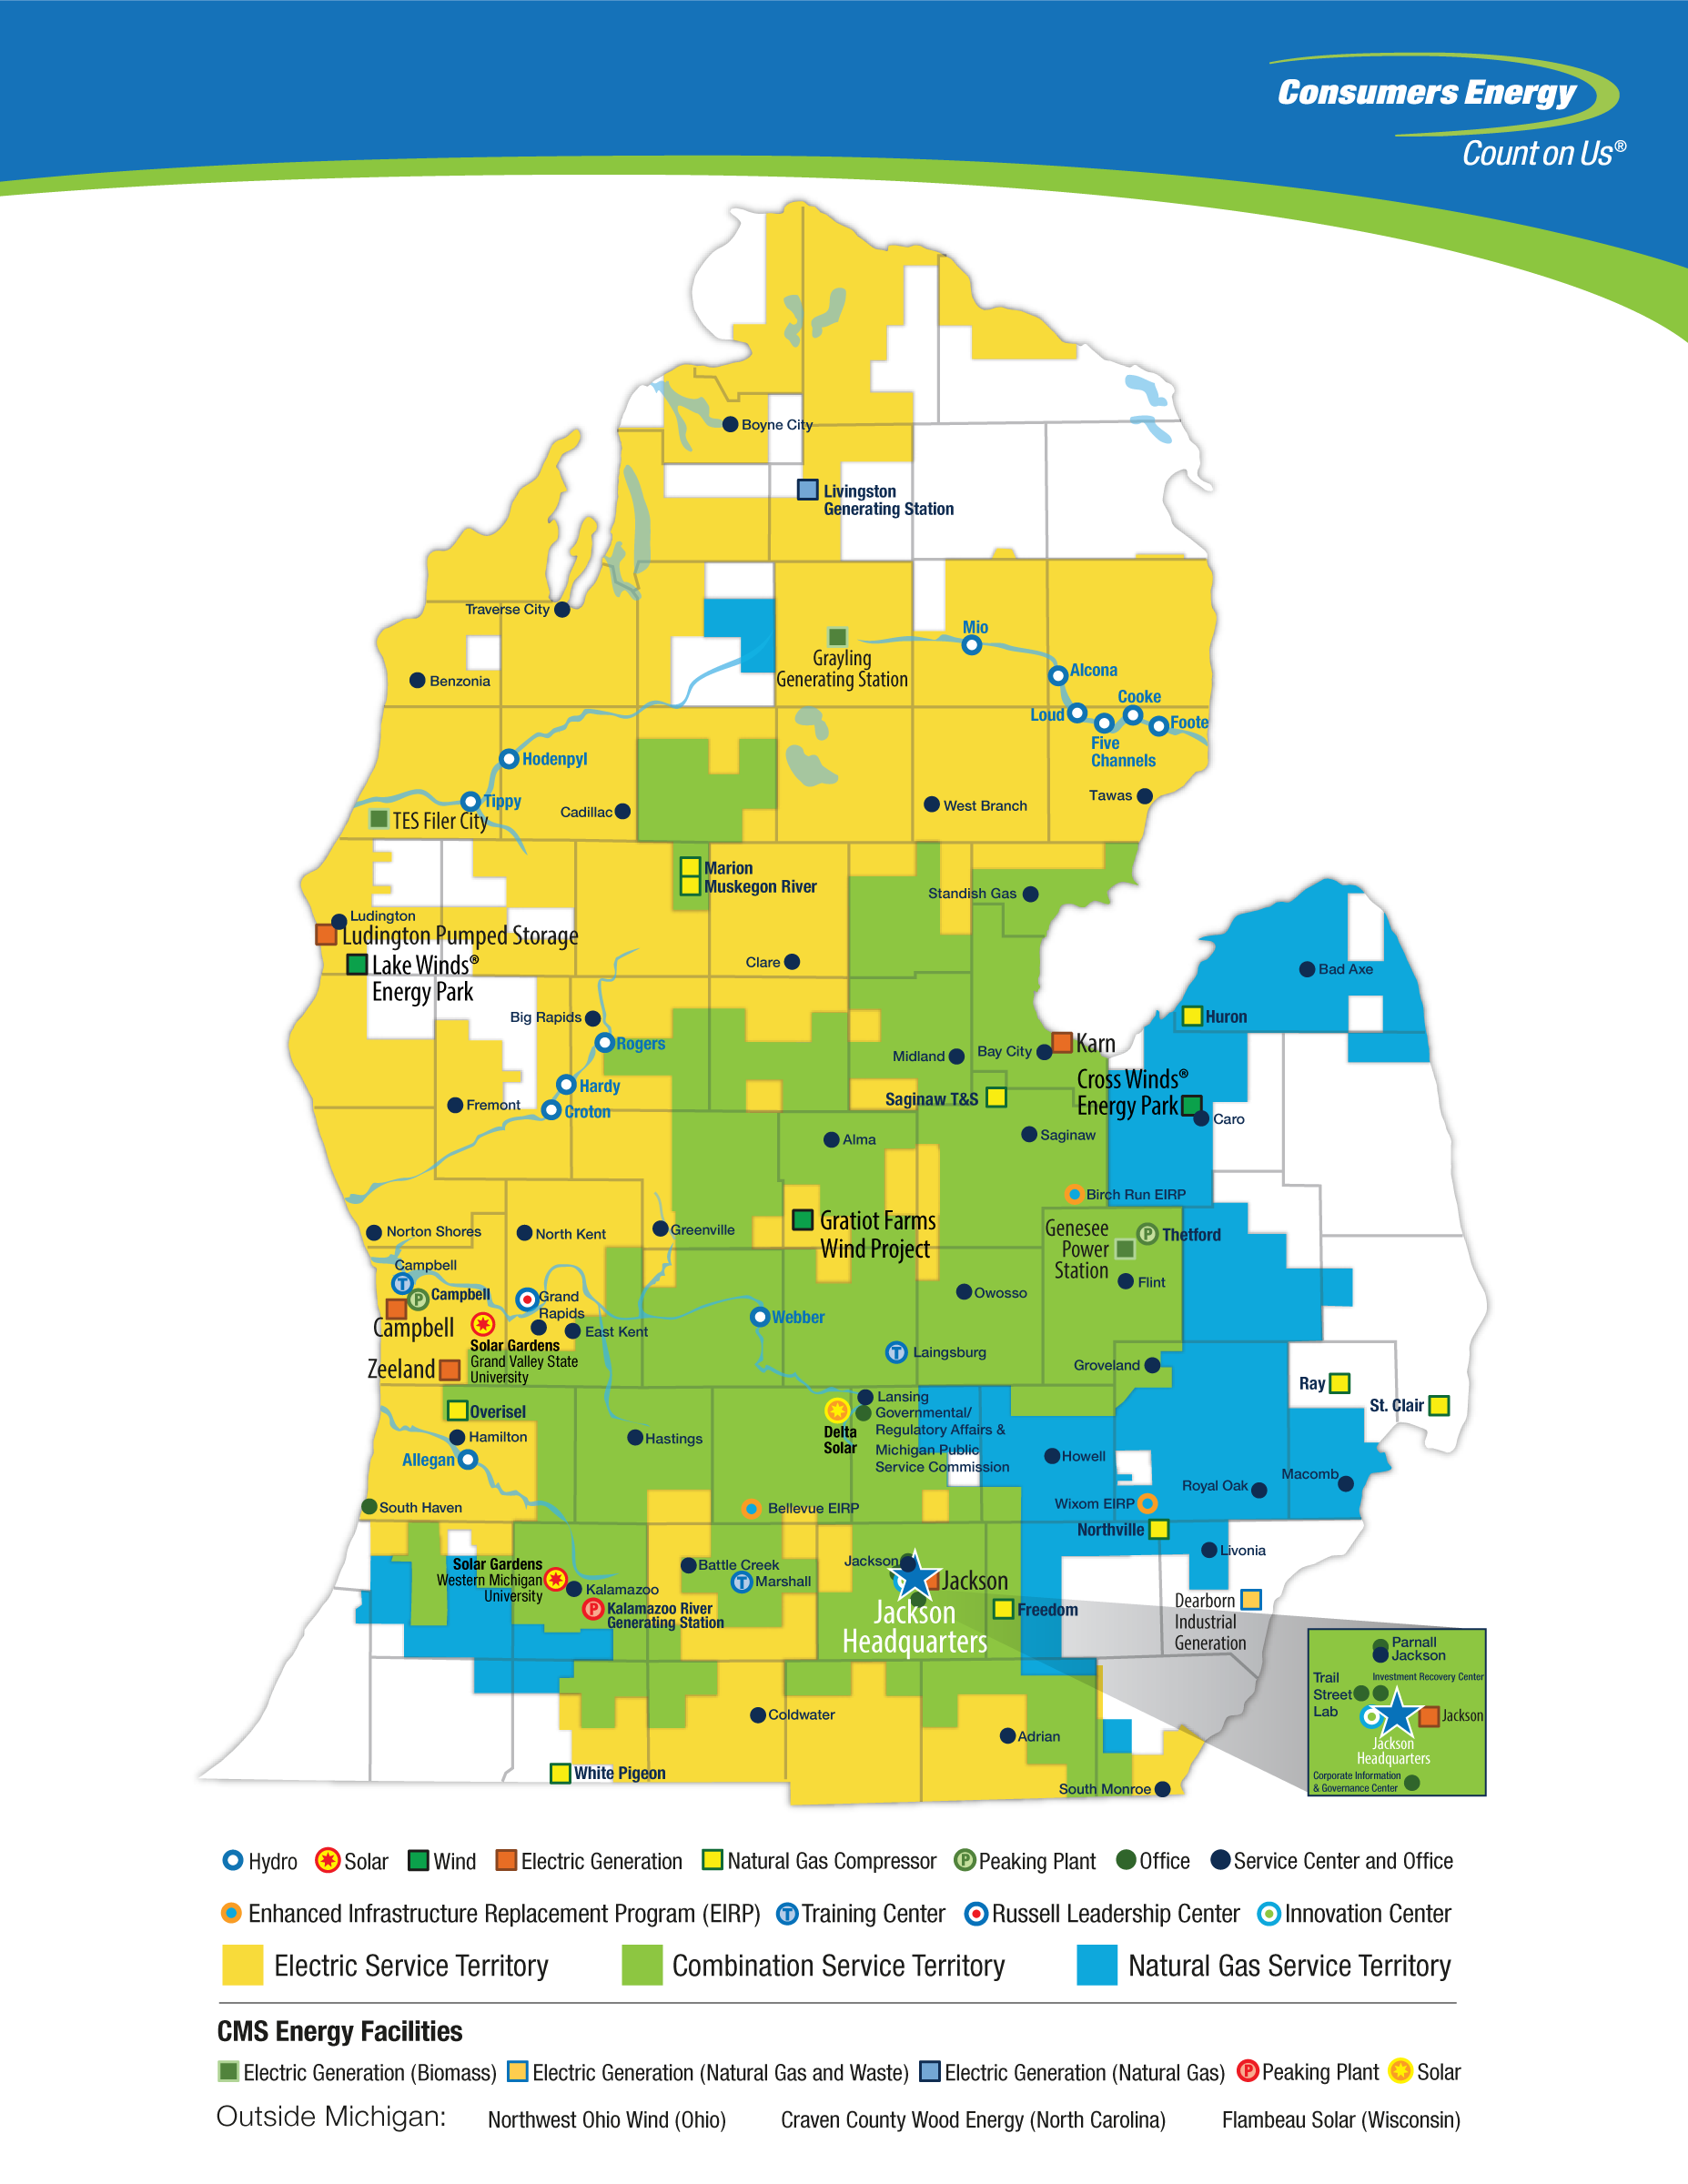 Electric And Natural Gas Service Territories Consumers Energy